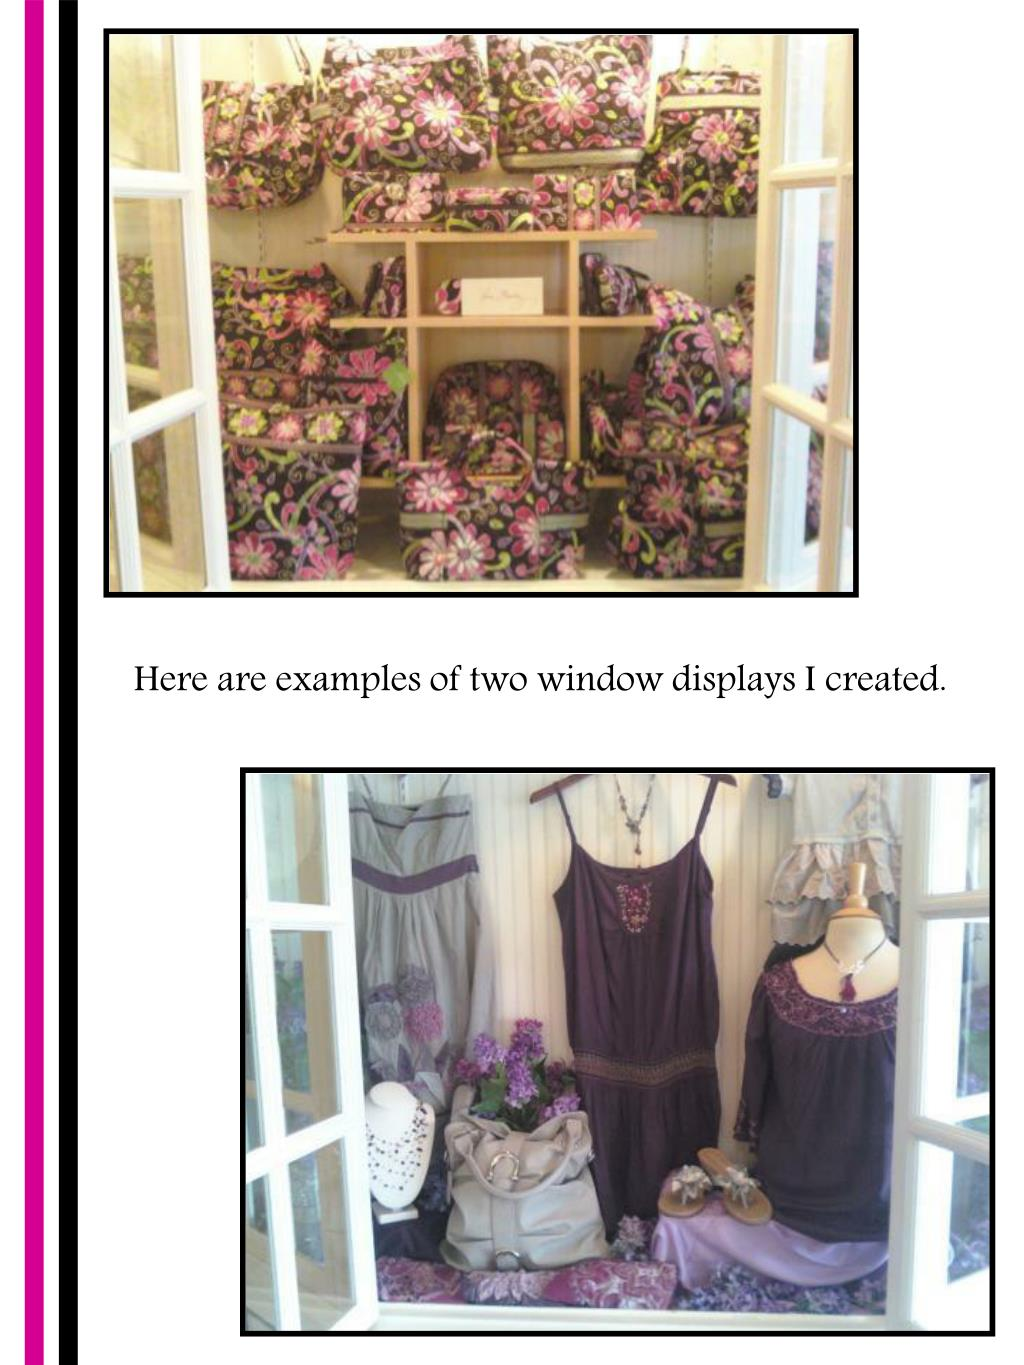 Here are examples of two window displays I created.